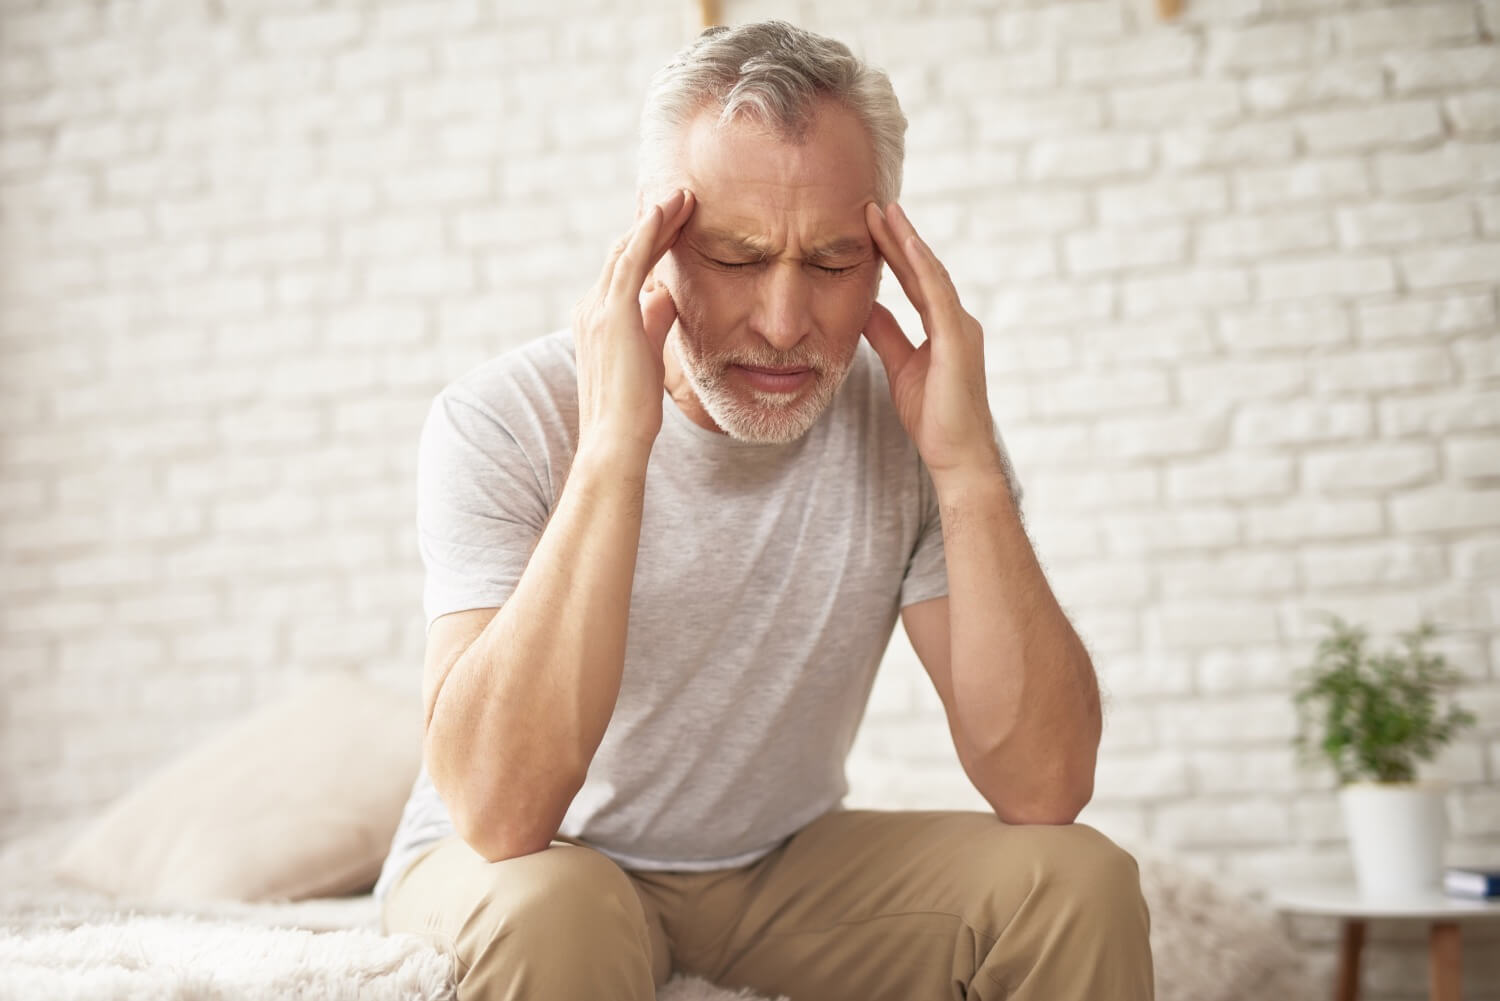 Do You Suffer From Migraines? Chinese Medicine For Migraines